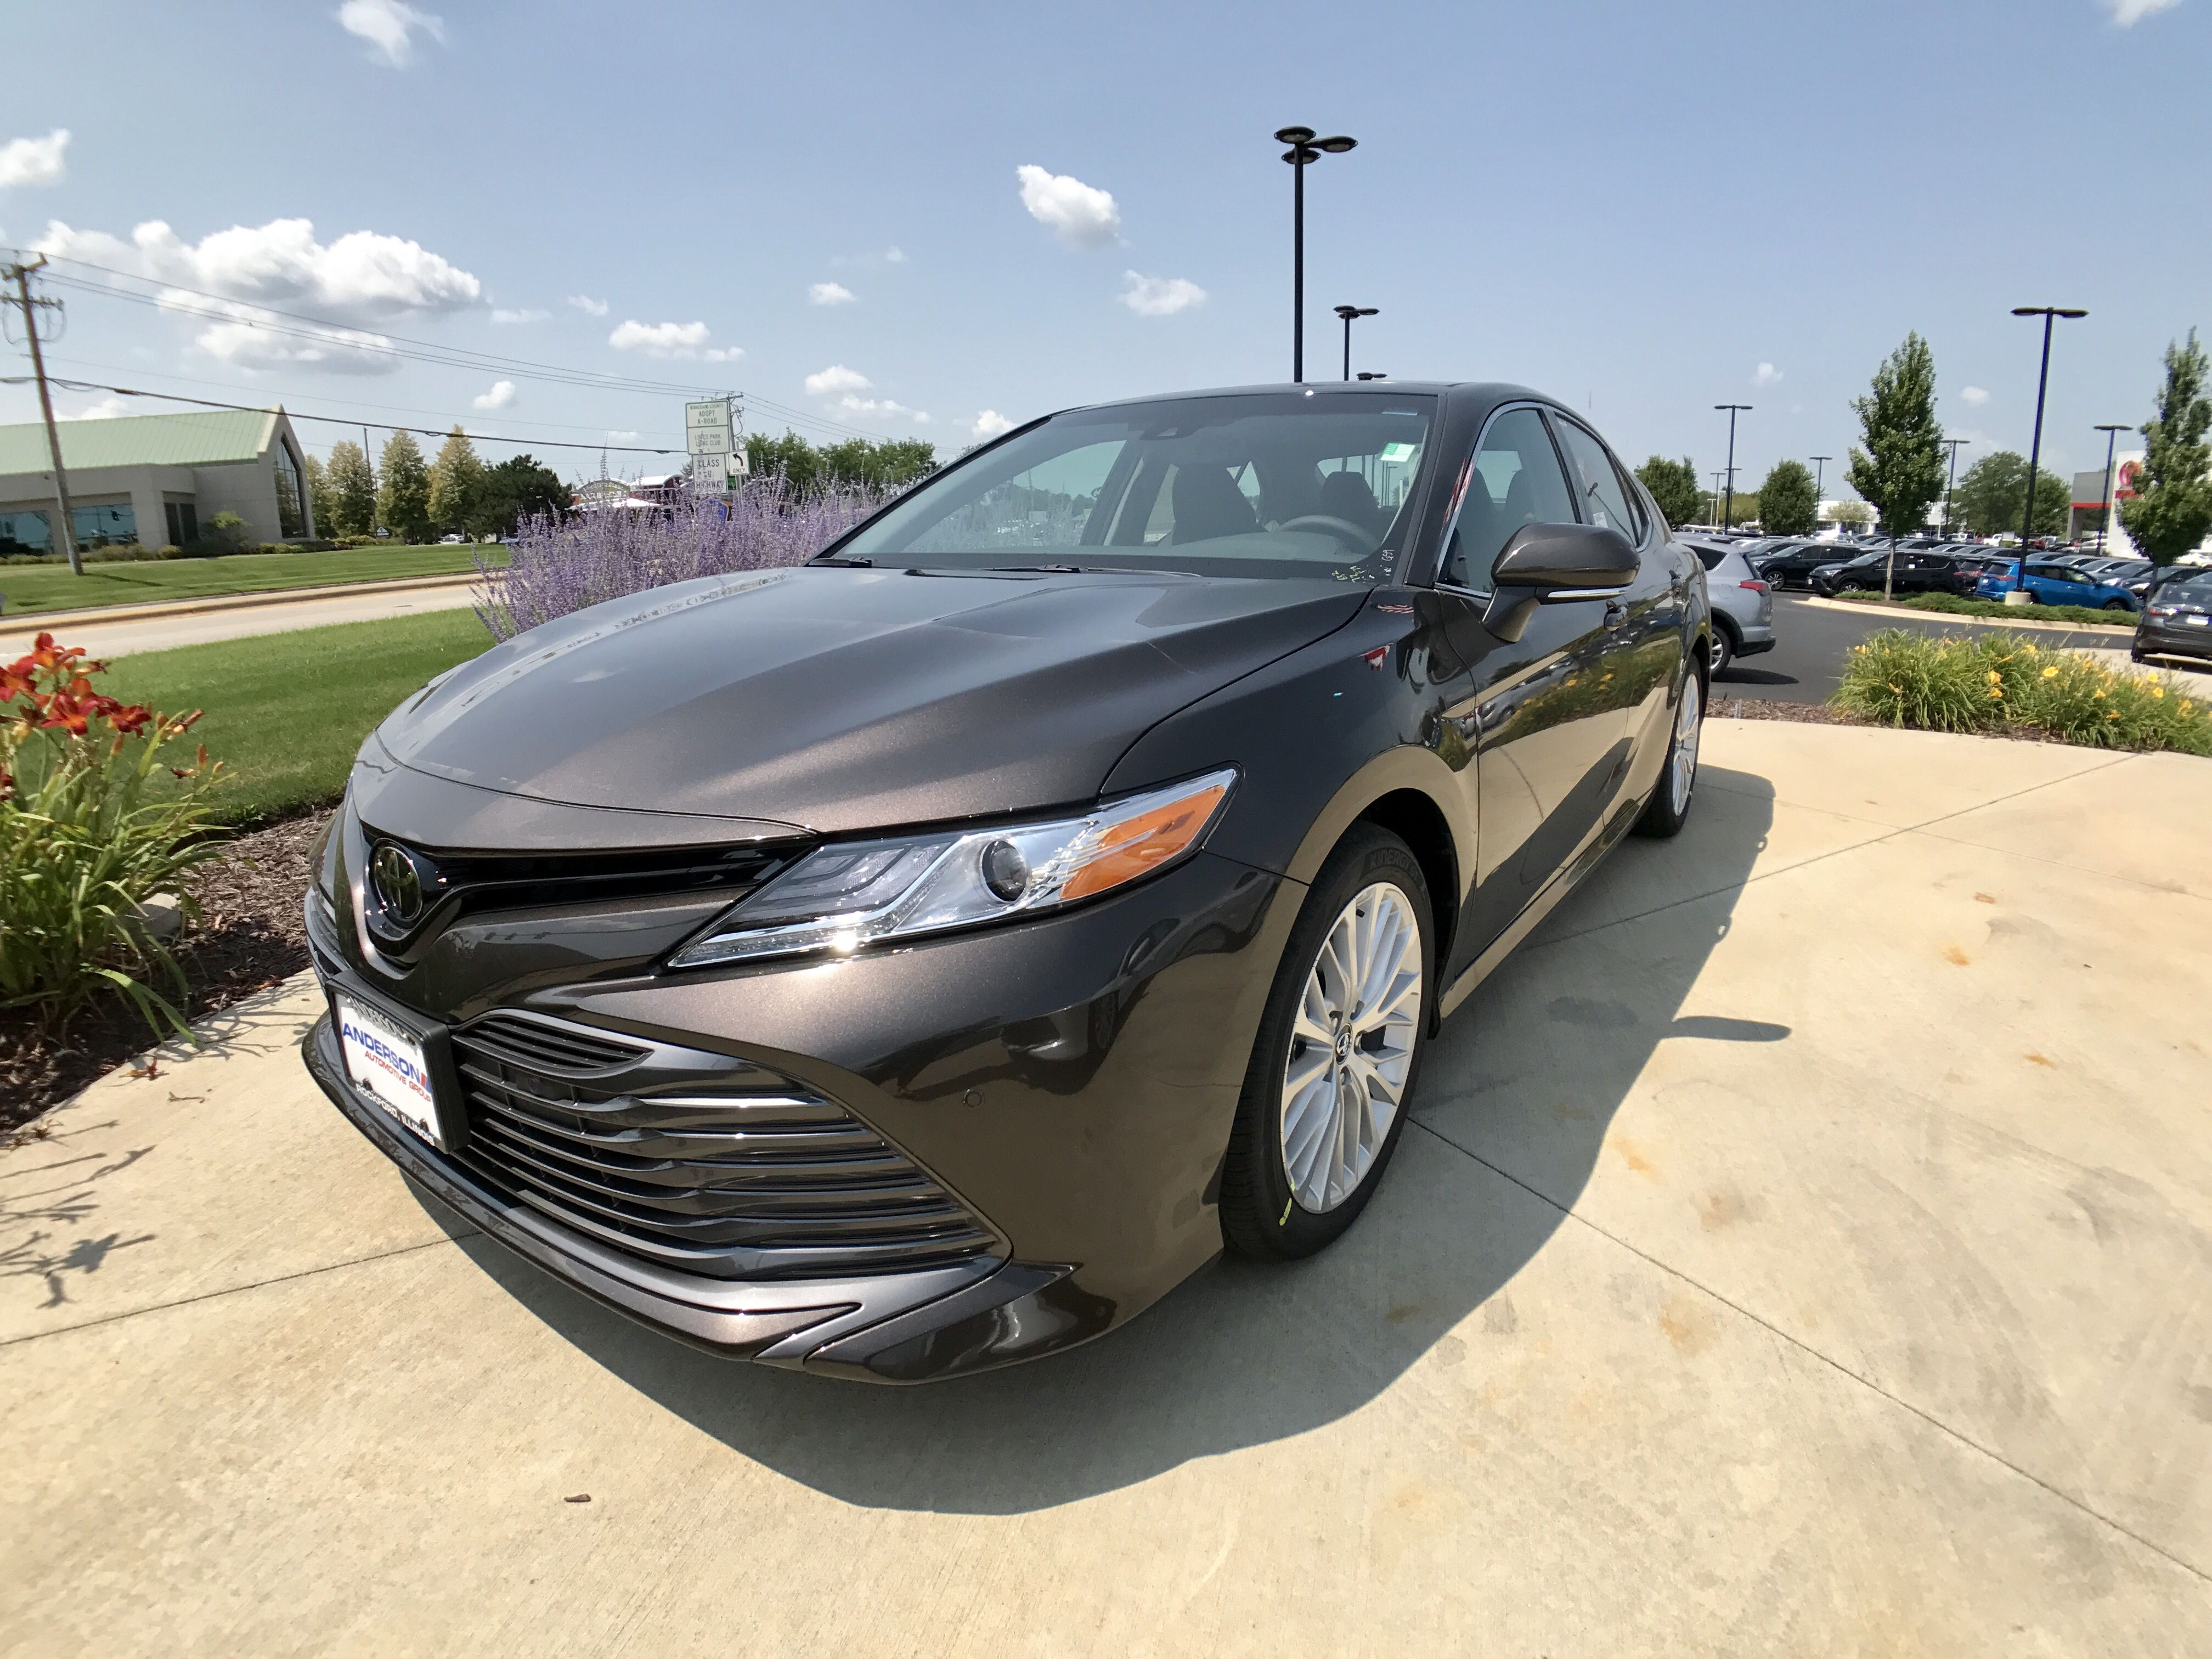 2018 Toyota Camry Brownstone Xle Toyota Toyota Toyota Camry